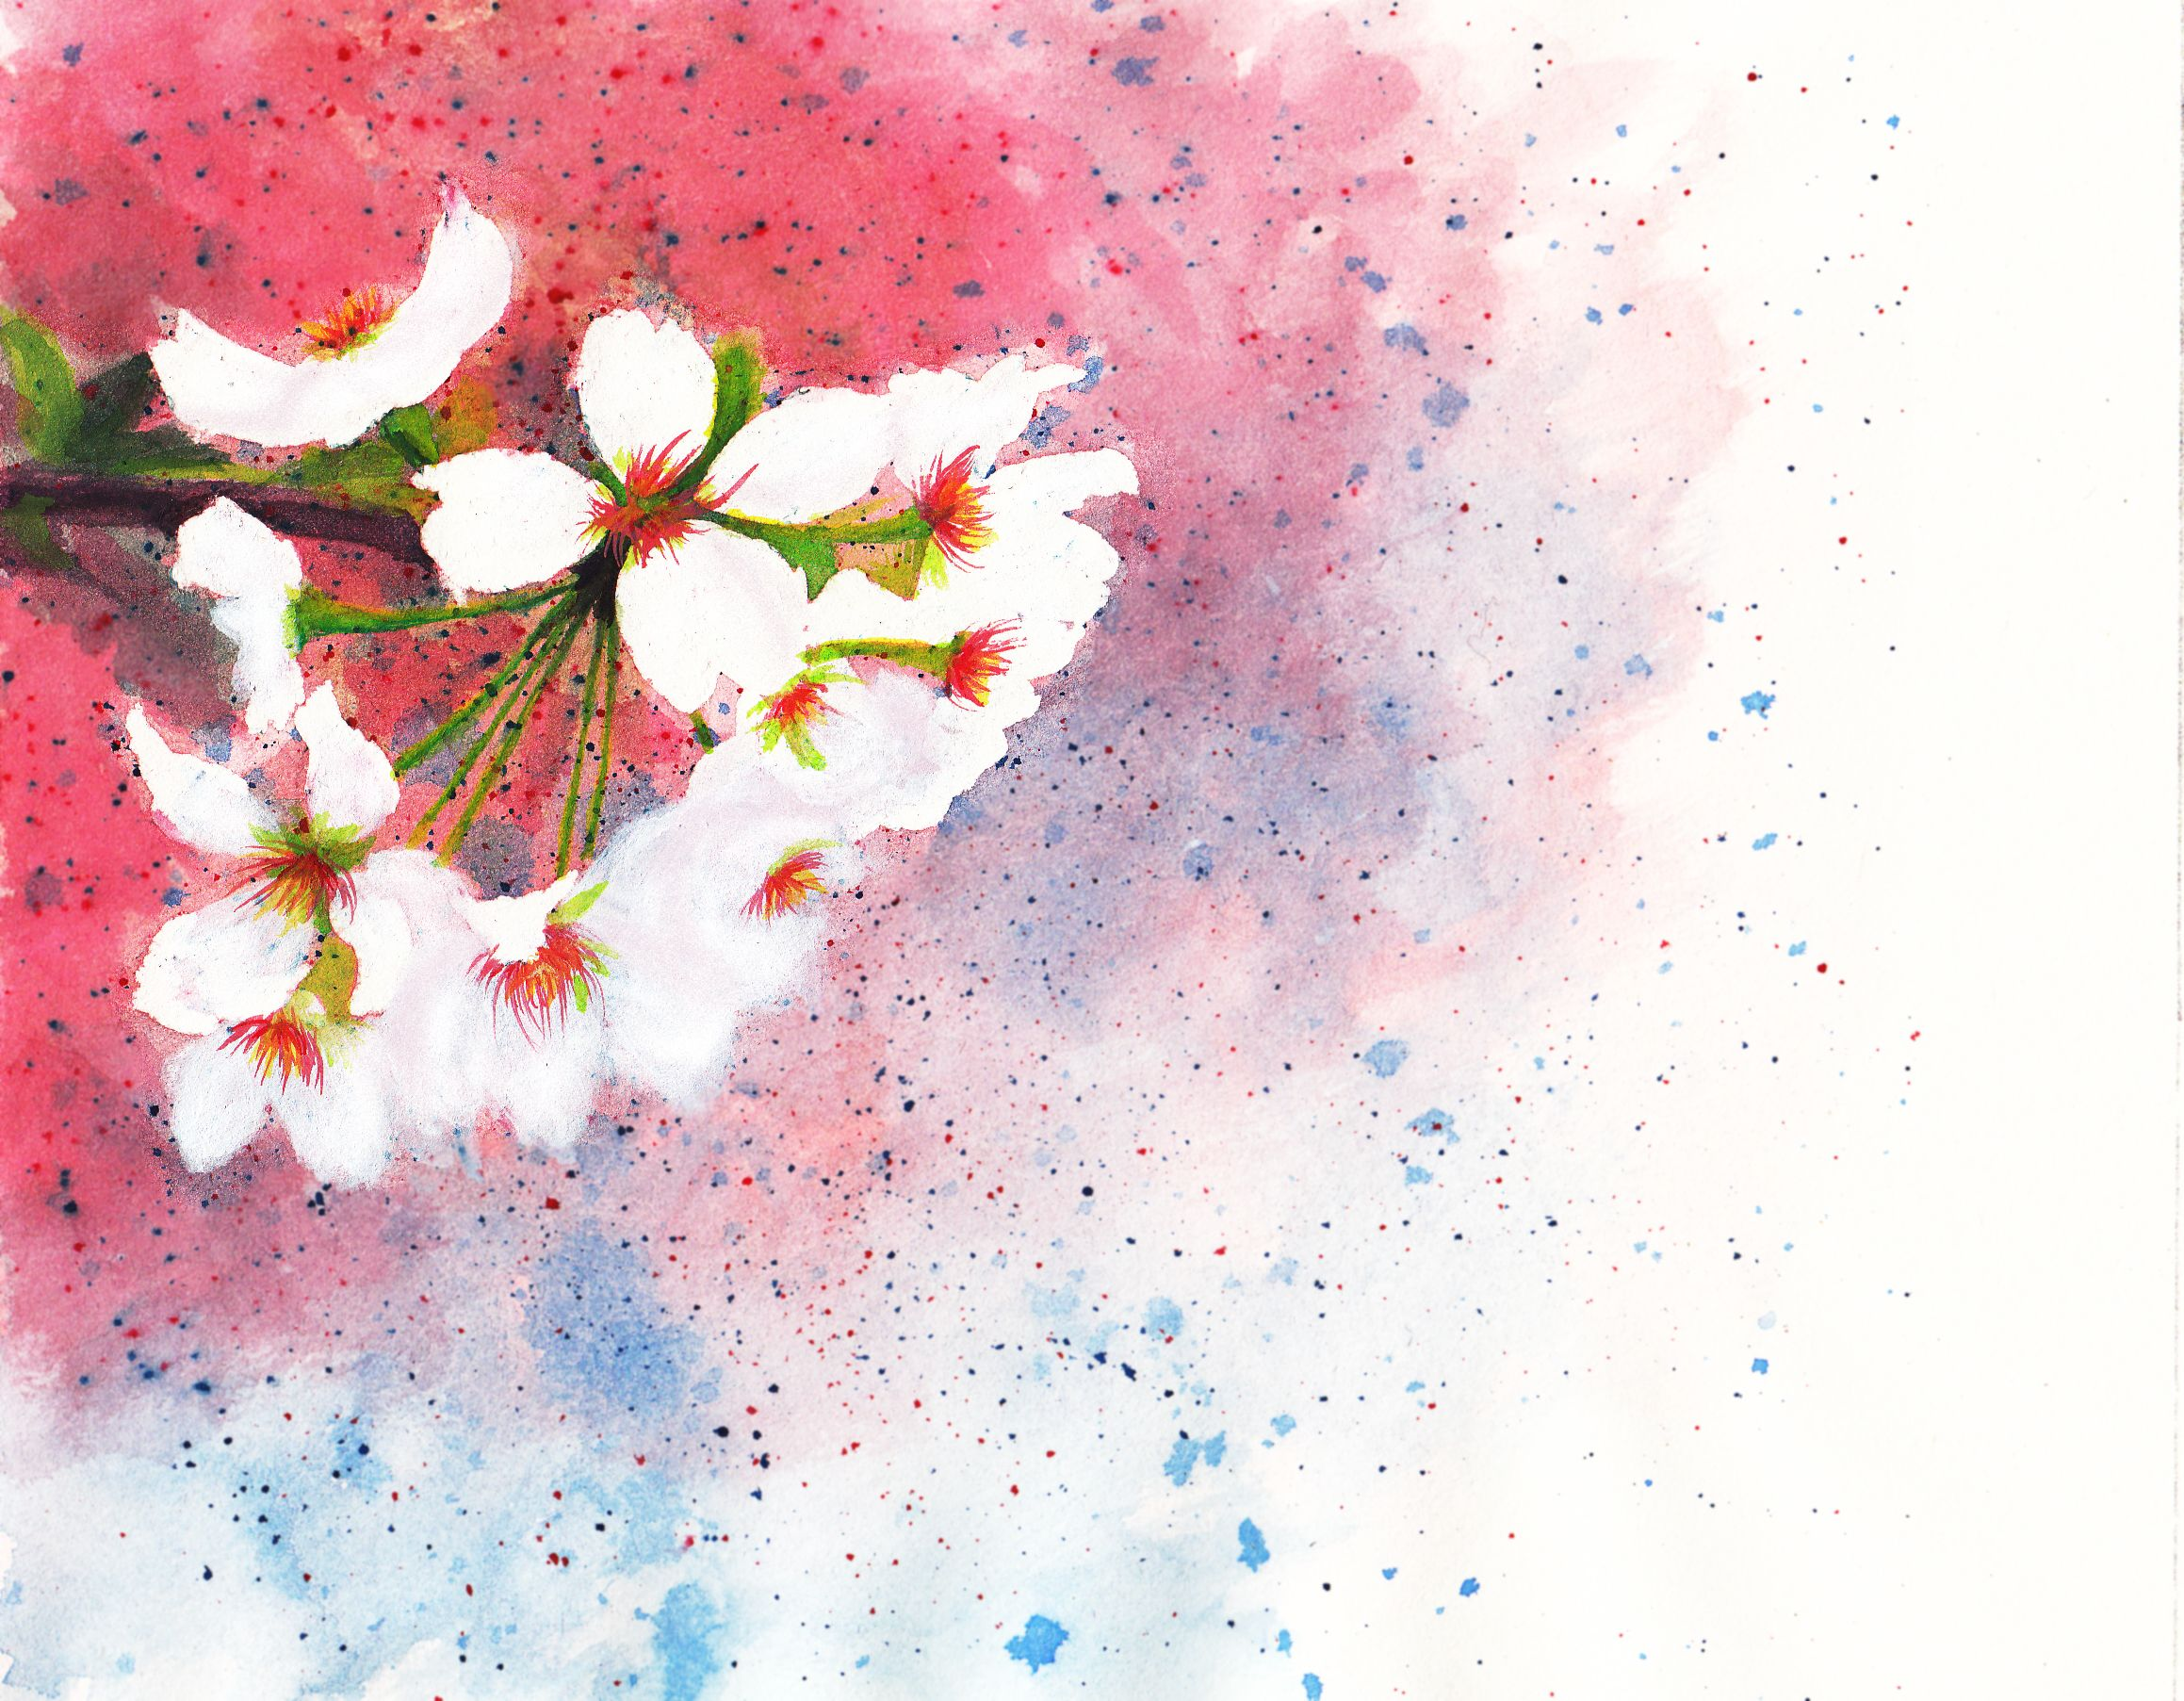 Watercolor book covers - With The Flower Background You Can Use It On Your Facebook Tumblr Tweeter Instagram Print It On Cups Bags Shirts Make A Book Cover And